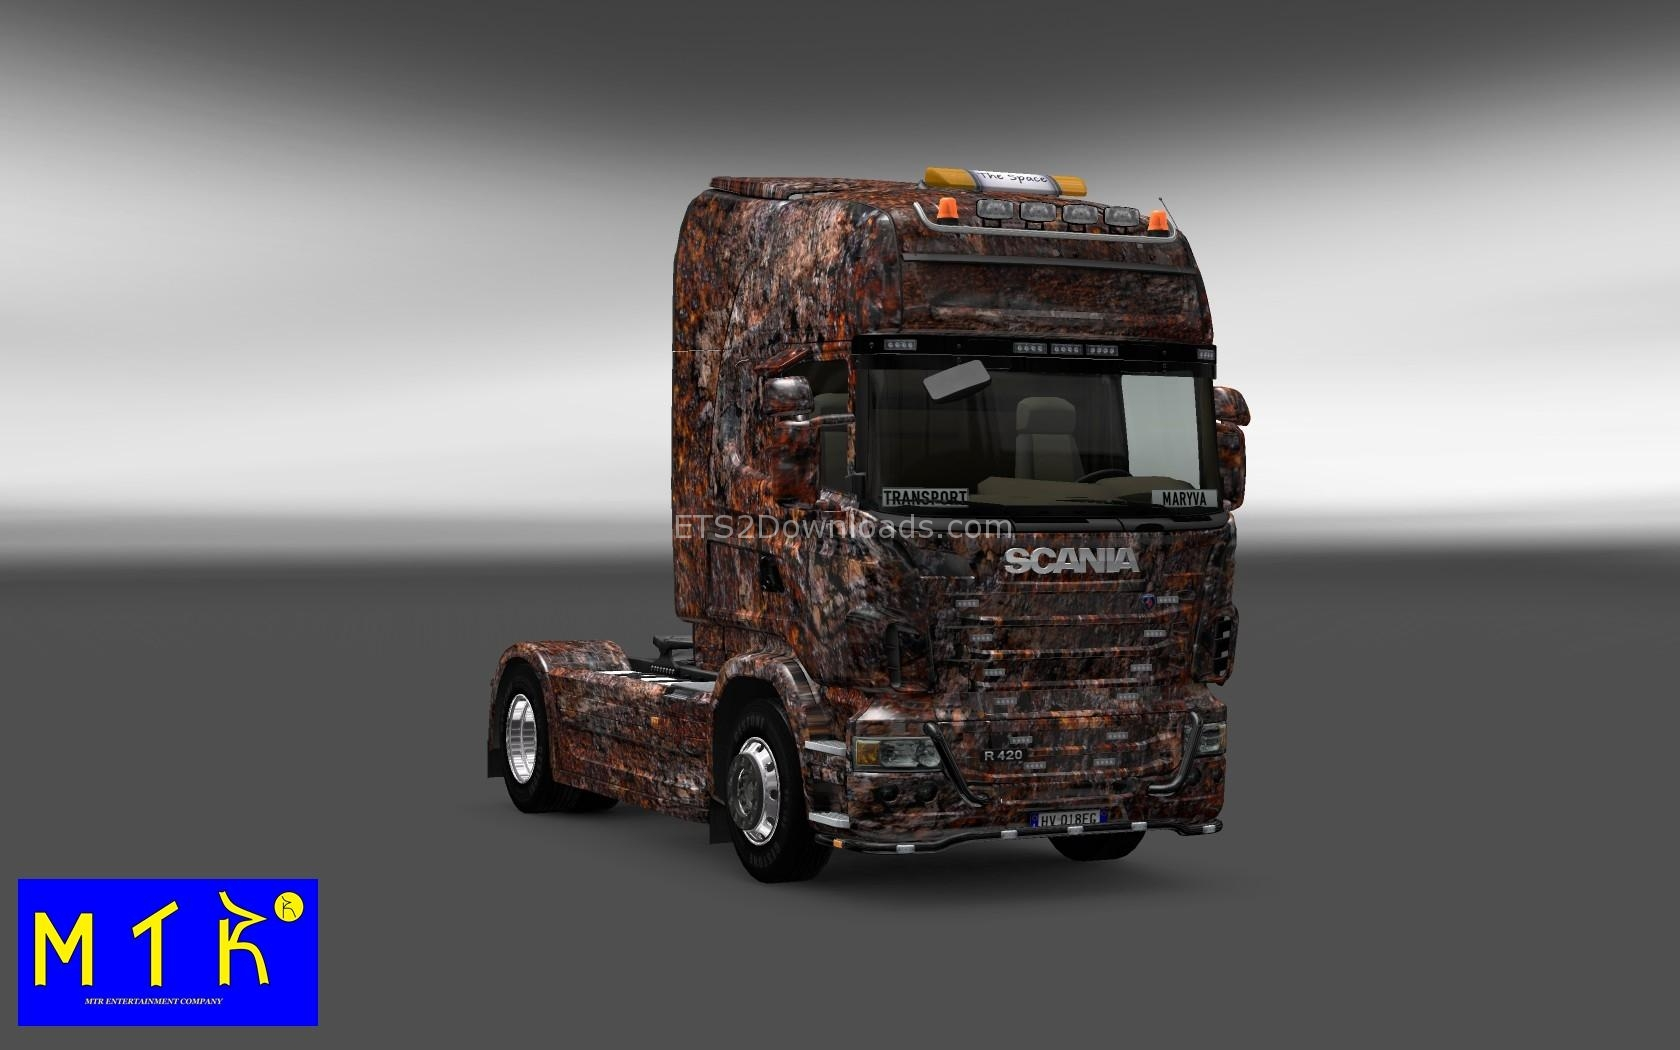 ferrugem-skin-for-scania-ets2